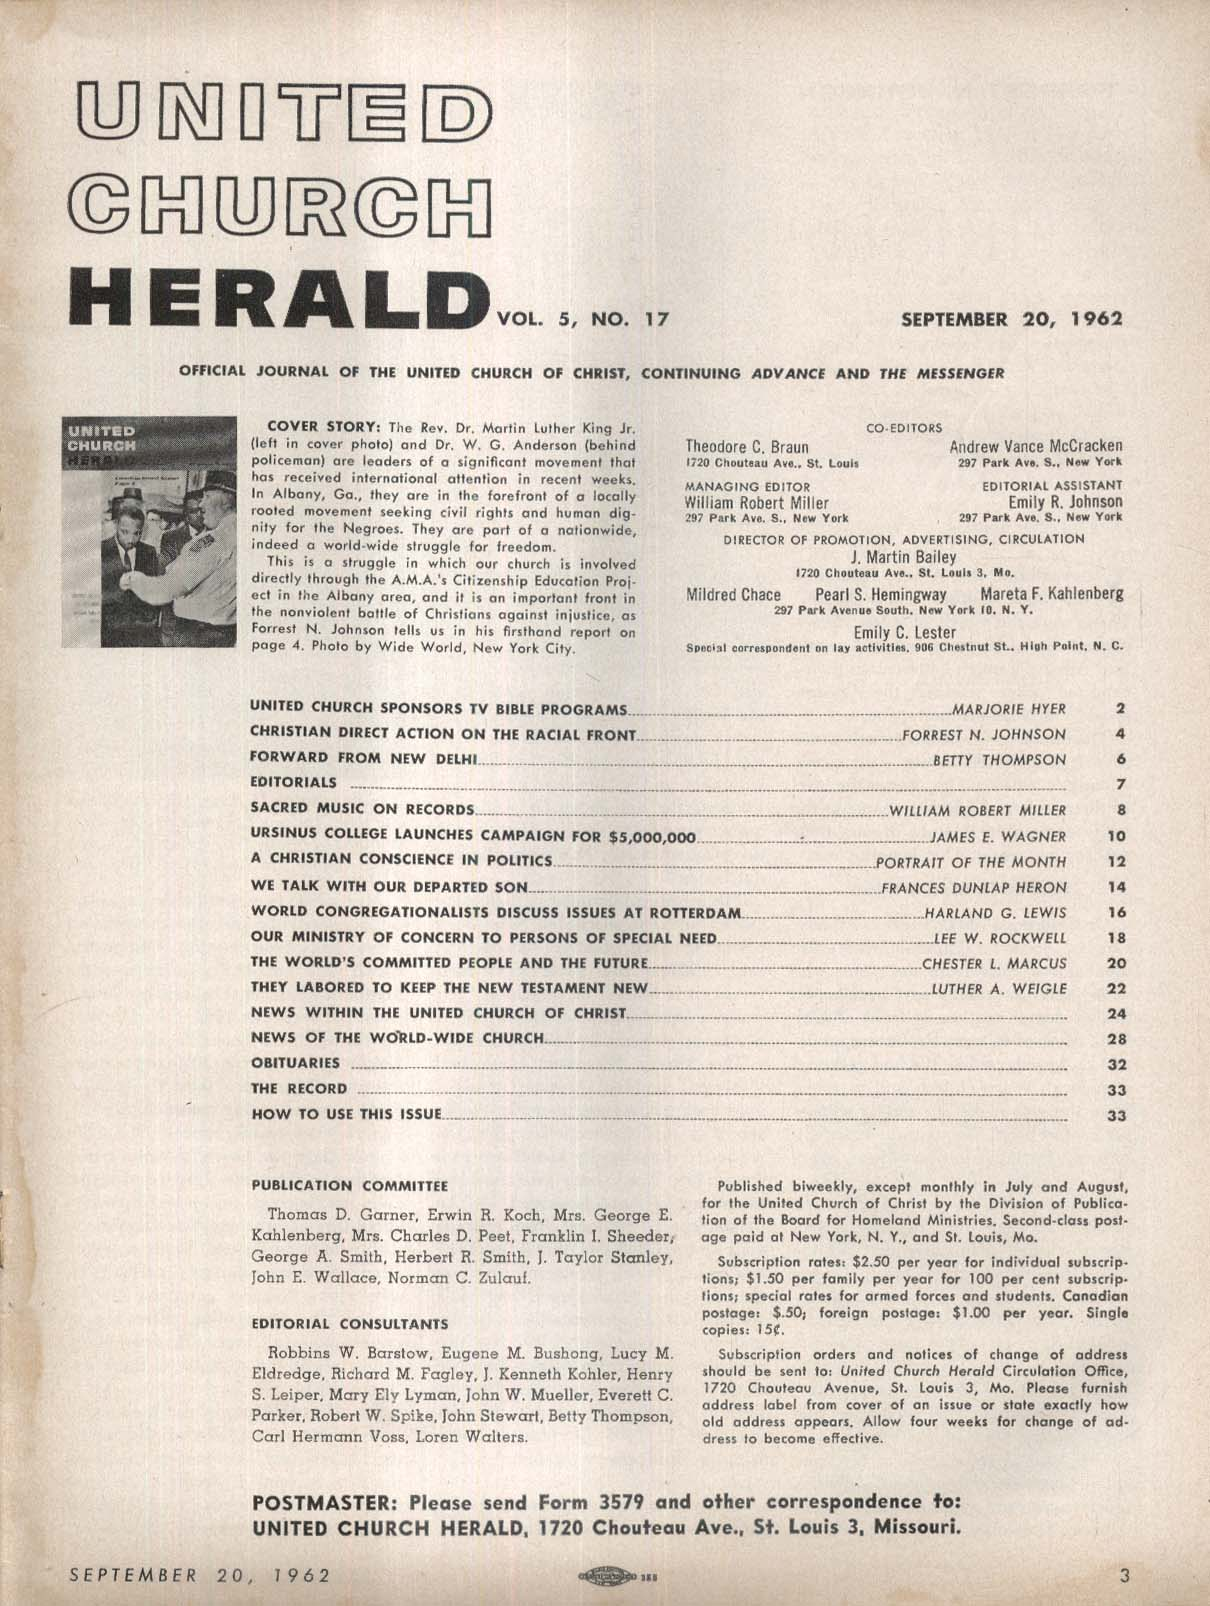 UNITED CHURCH HERALD Martin Luther King Jr W G Anderson 9/20 1962